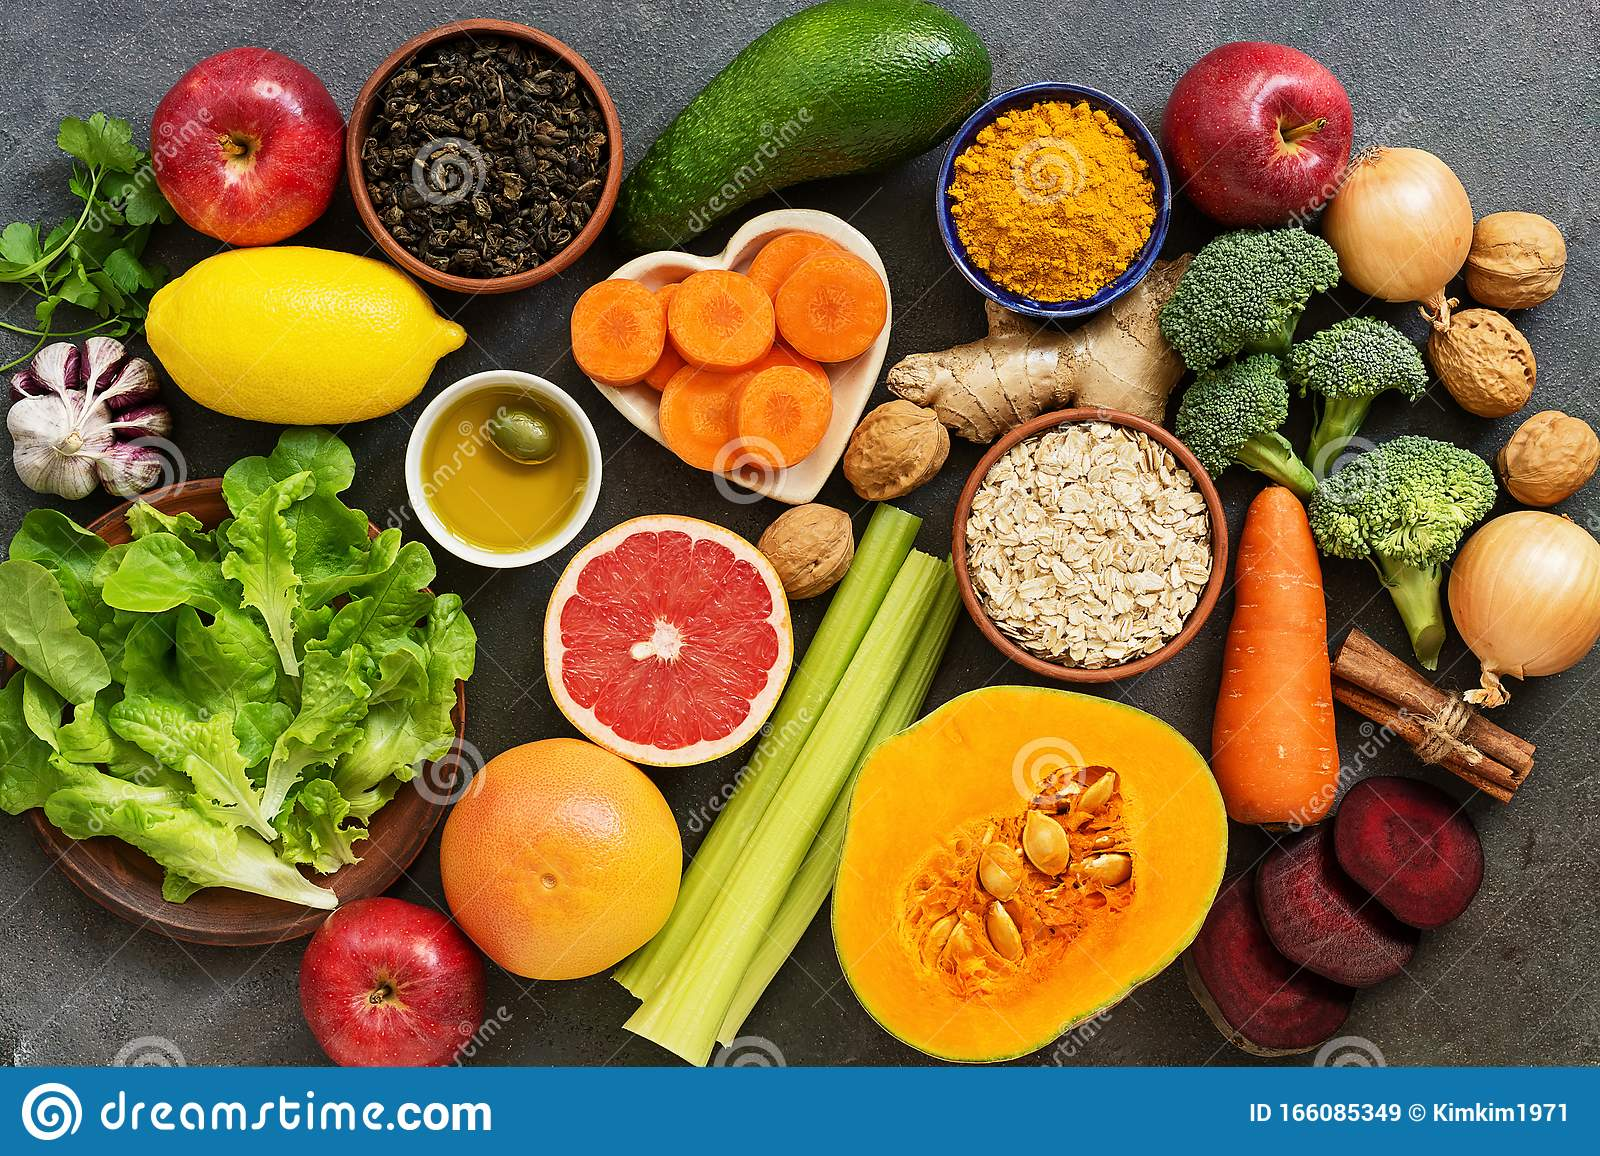 HEALTHY NUTRITION WHAT IS THE MEANING OF NUTRITION